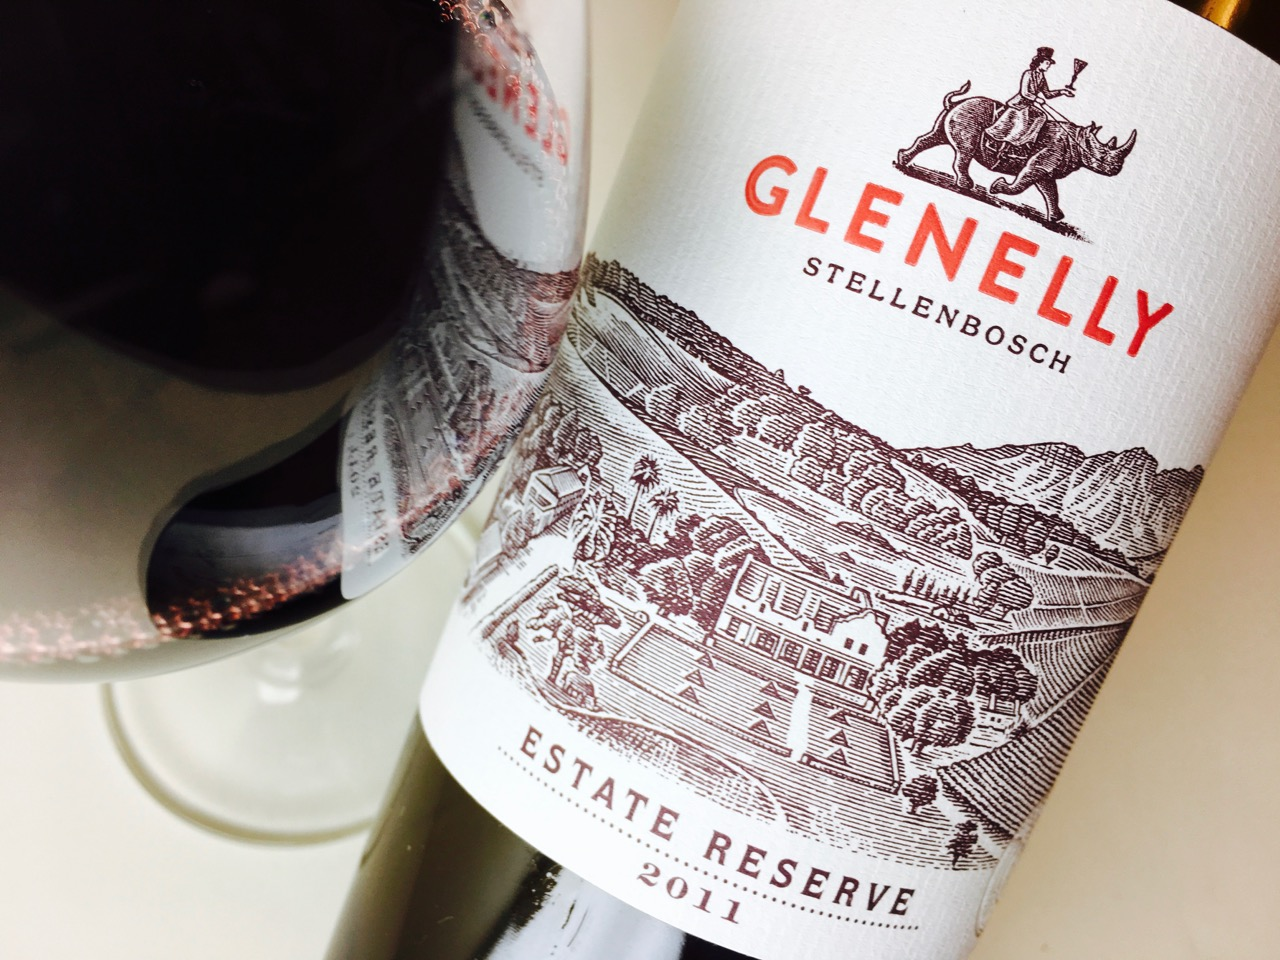 2011 Glenelly Red Blend Estate Reserve Stellenbosch